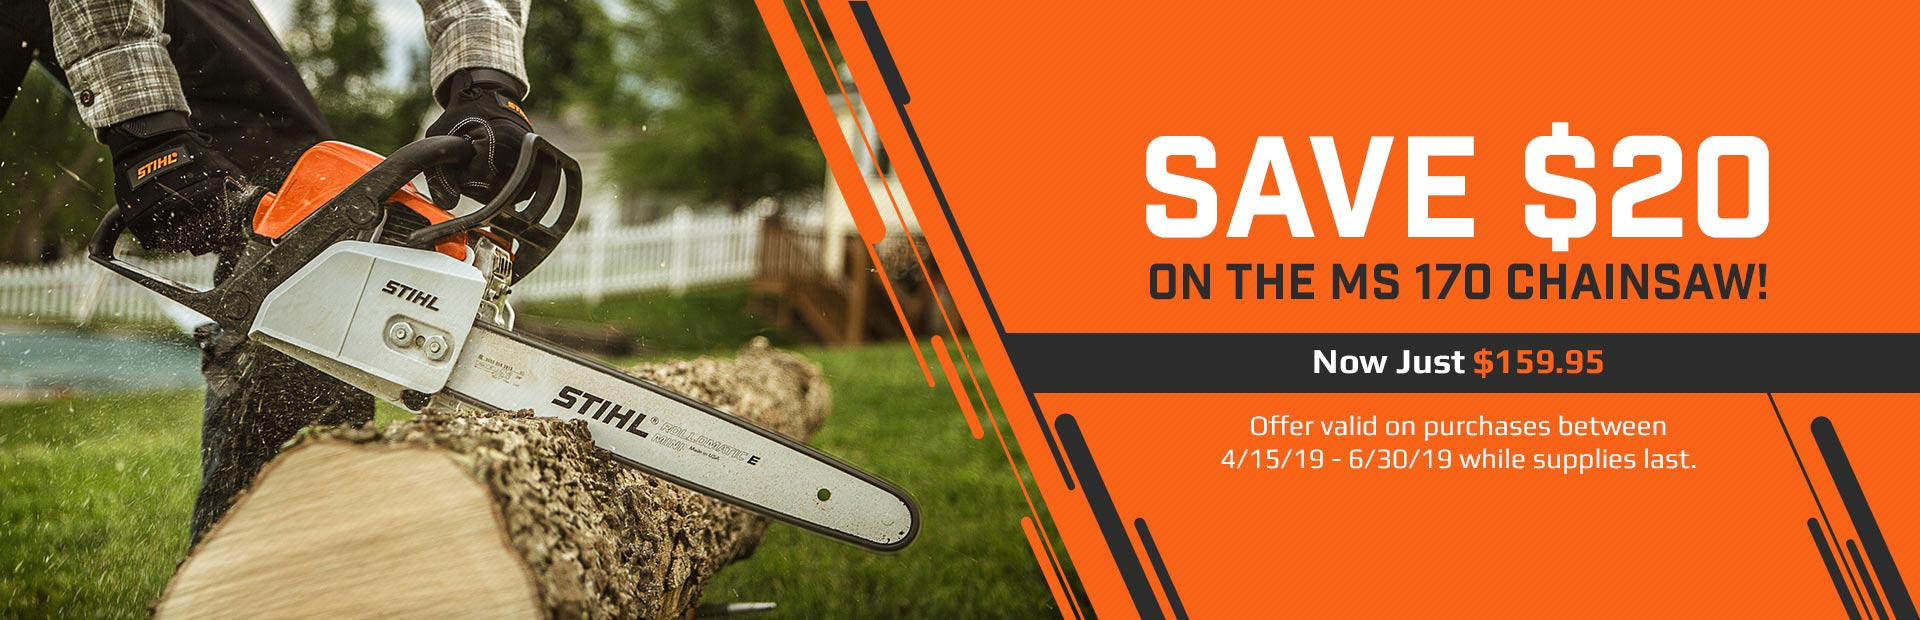 MS 170 Chainsaws: Now just $159.95. Click here to see the models.